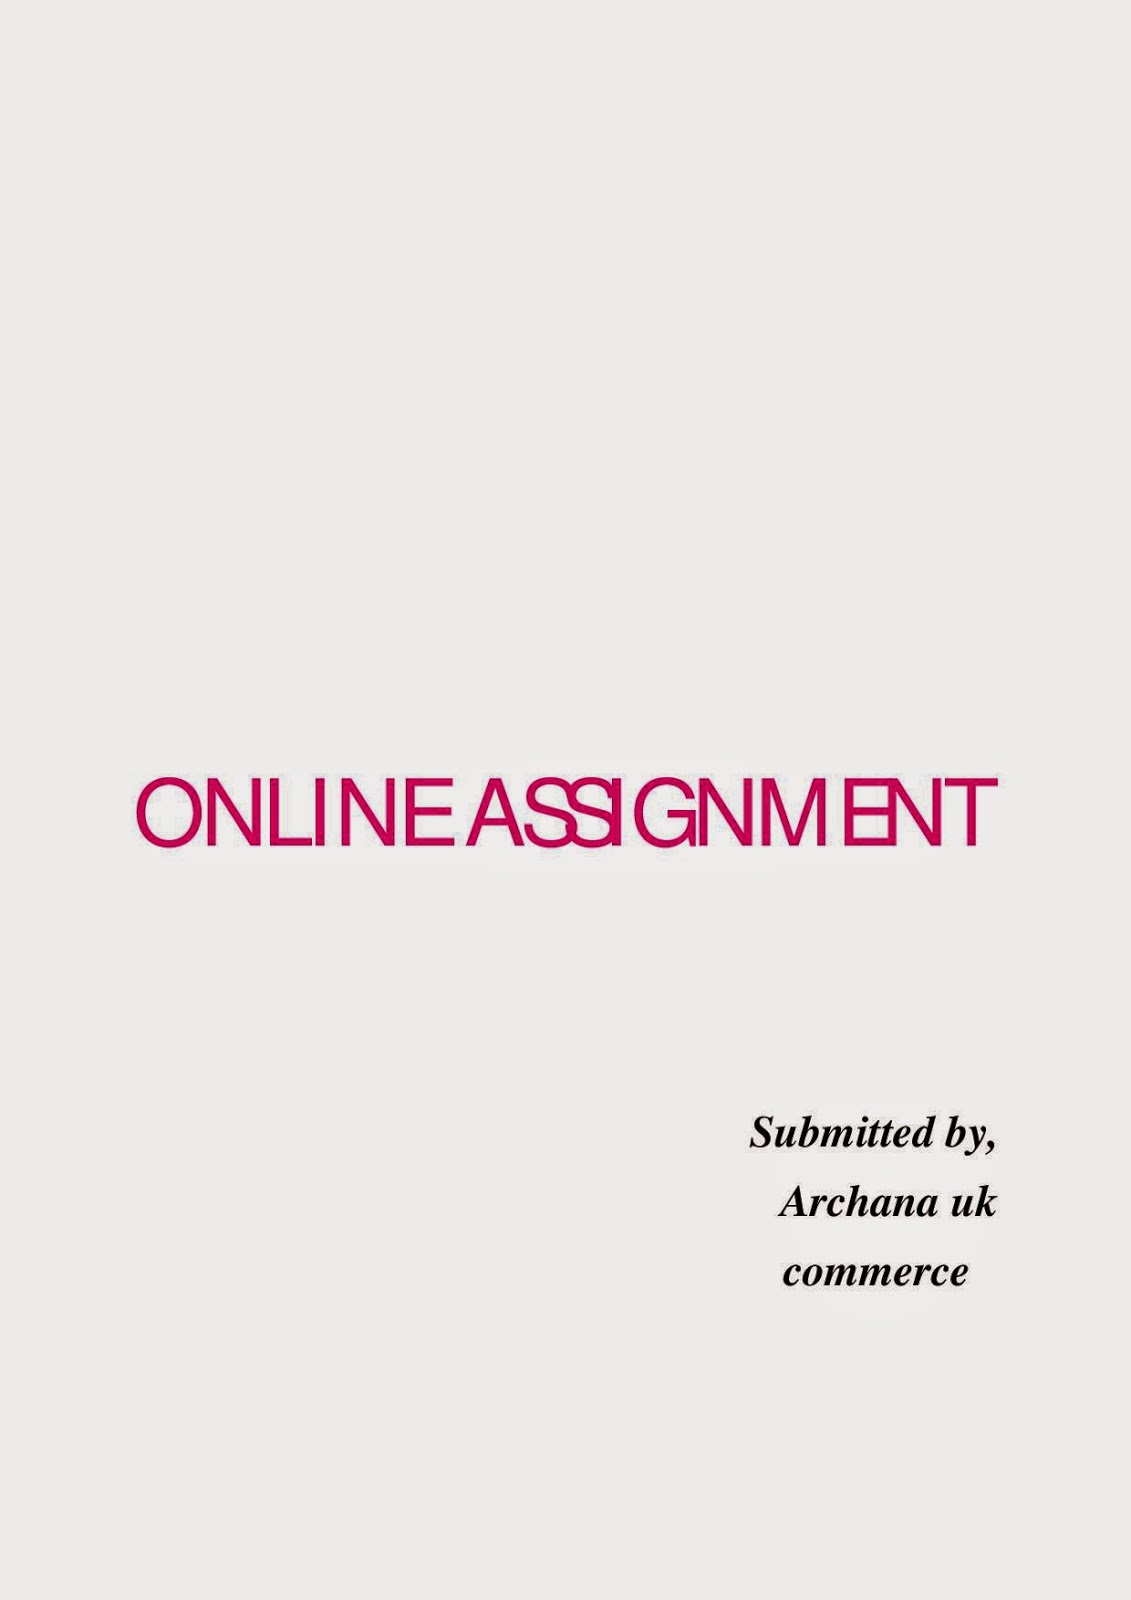 archana uk online assignment